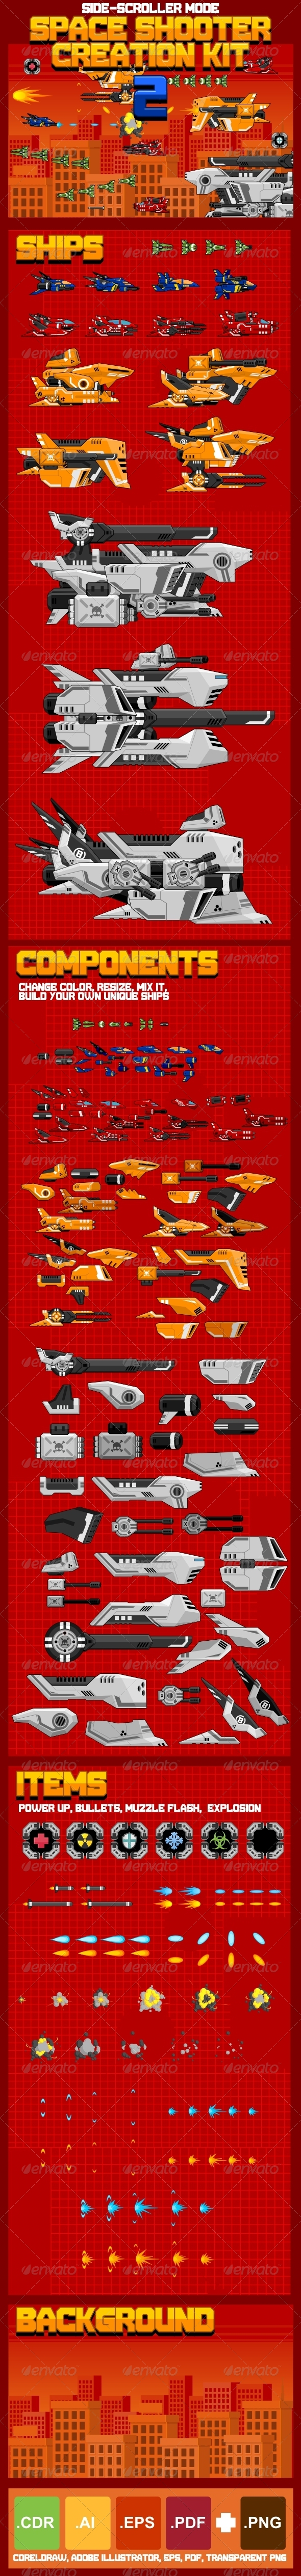 Space Shooter Creation Kit 2 - Sprites Game Assets